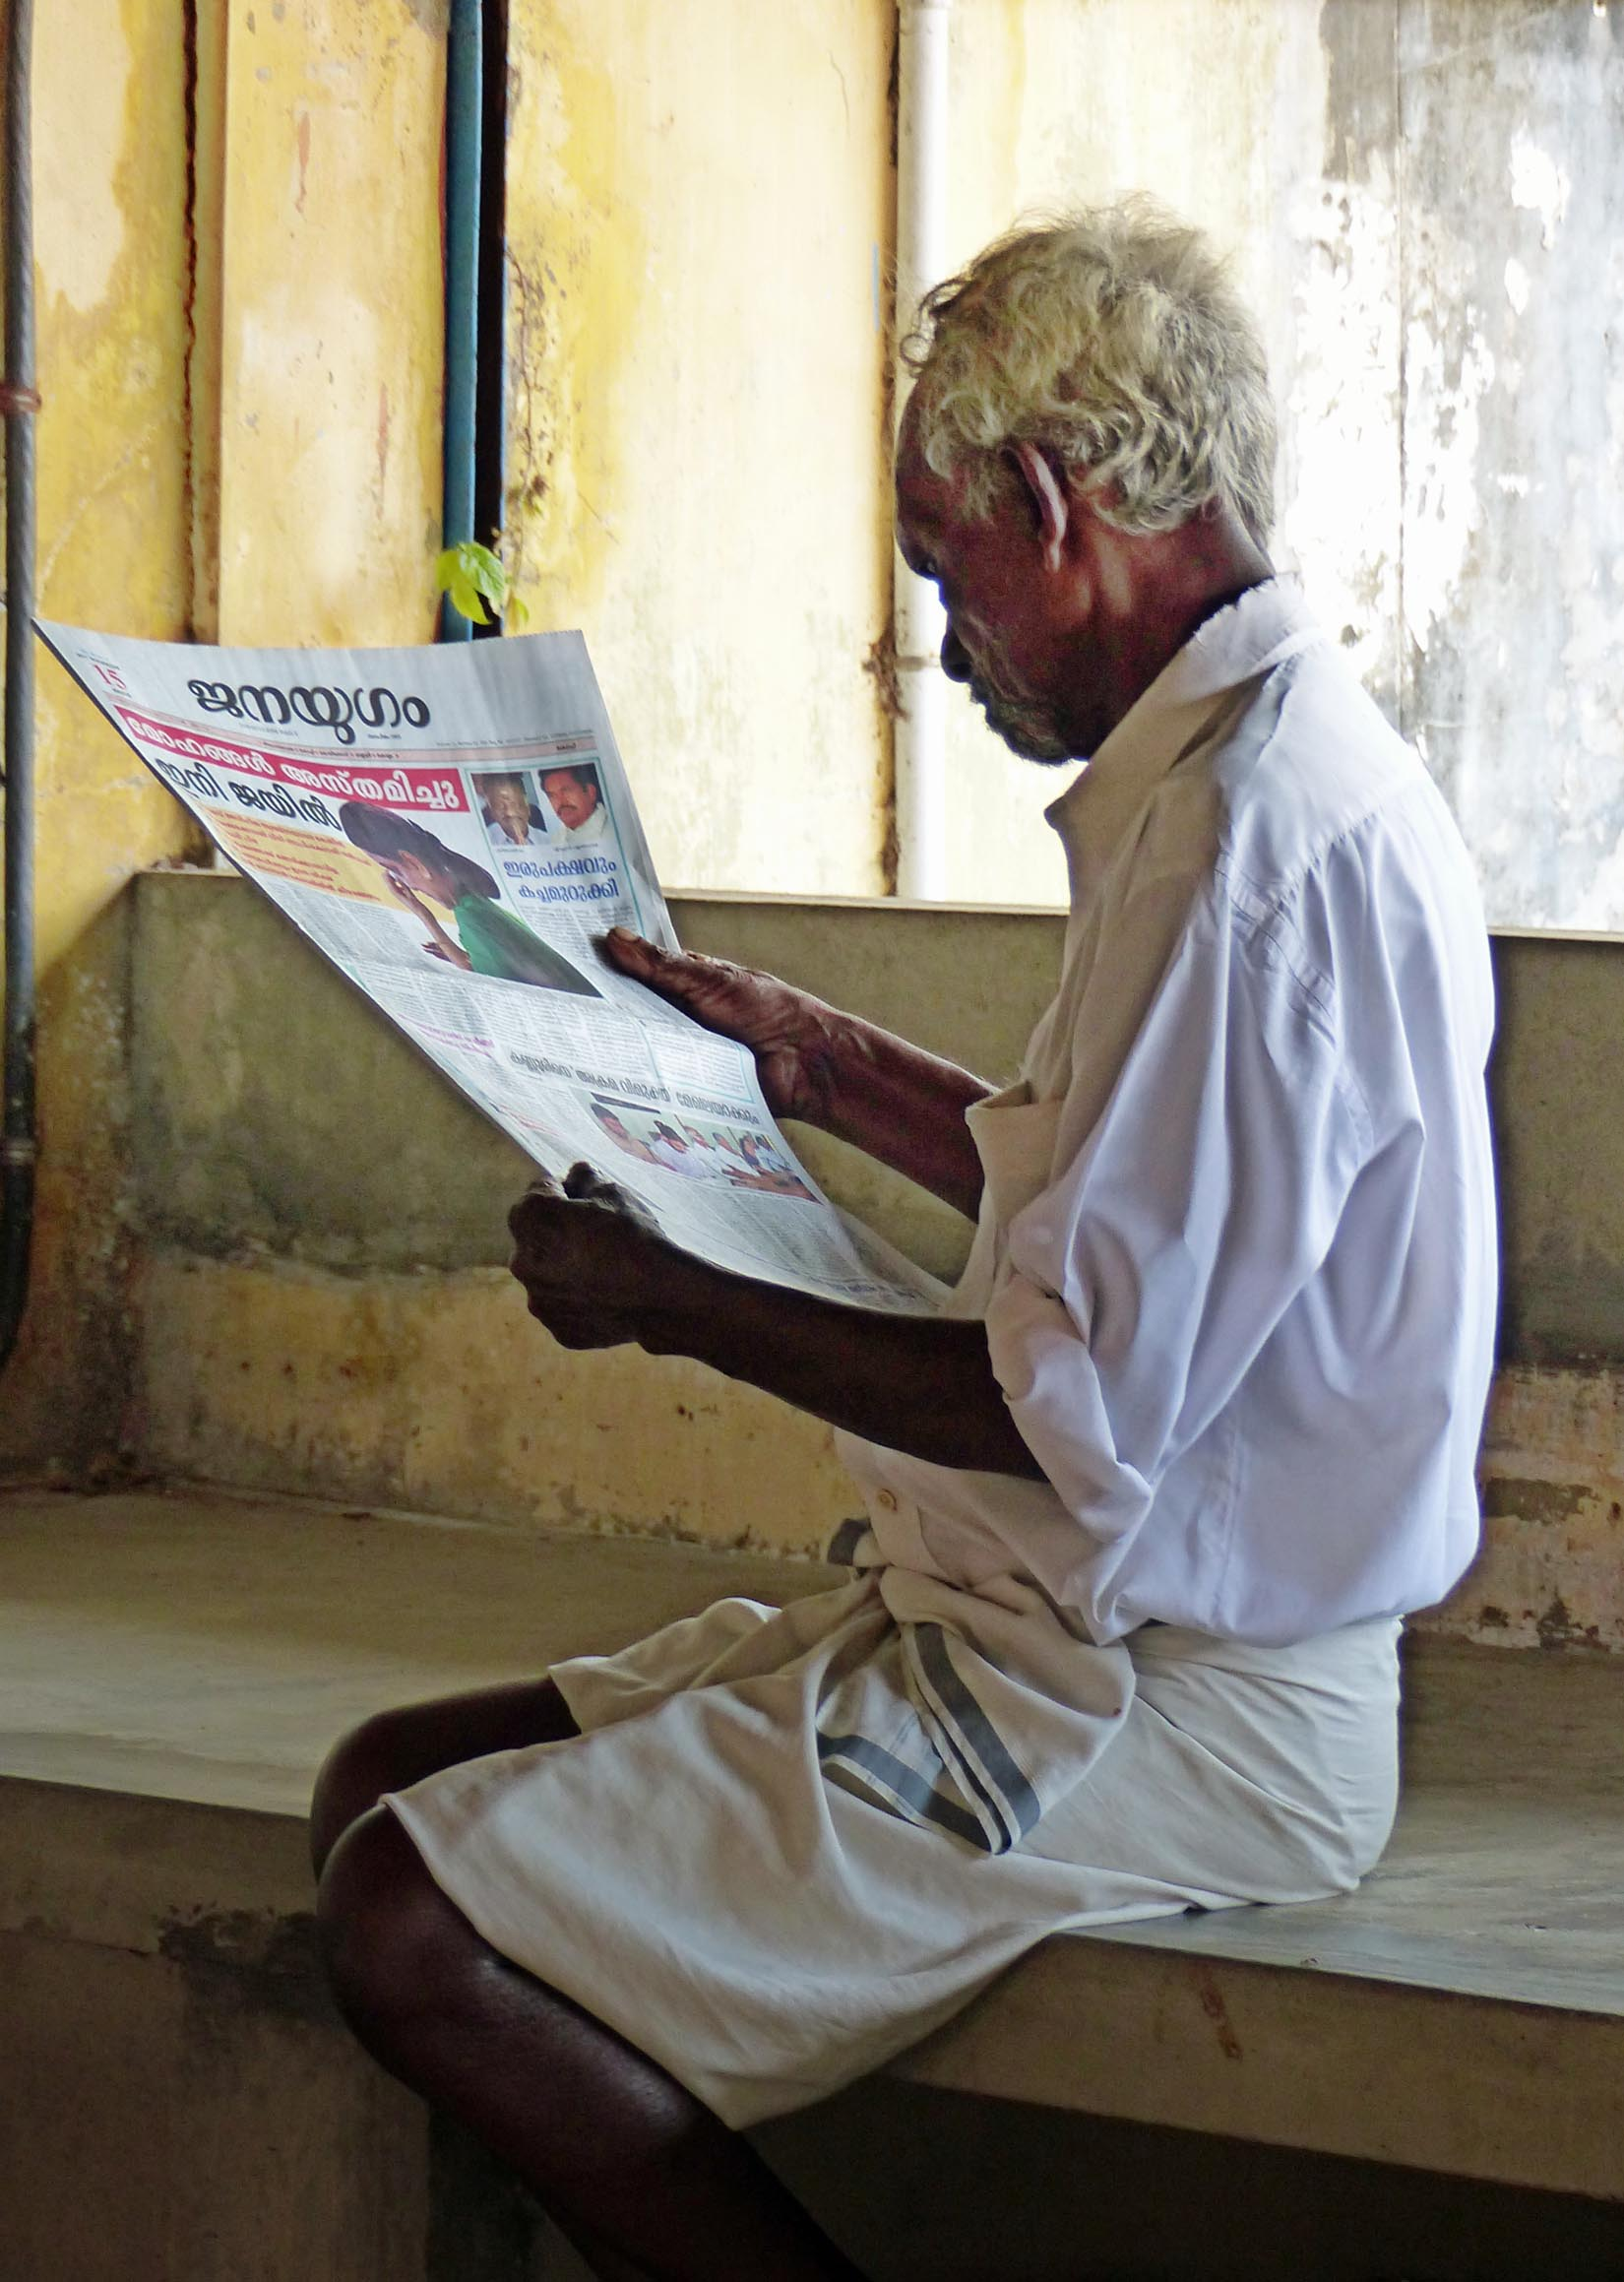 Man reading a newspaper on a stone seat